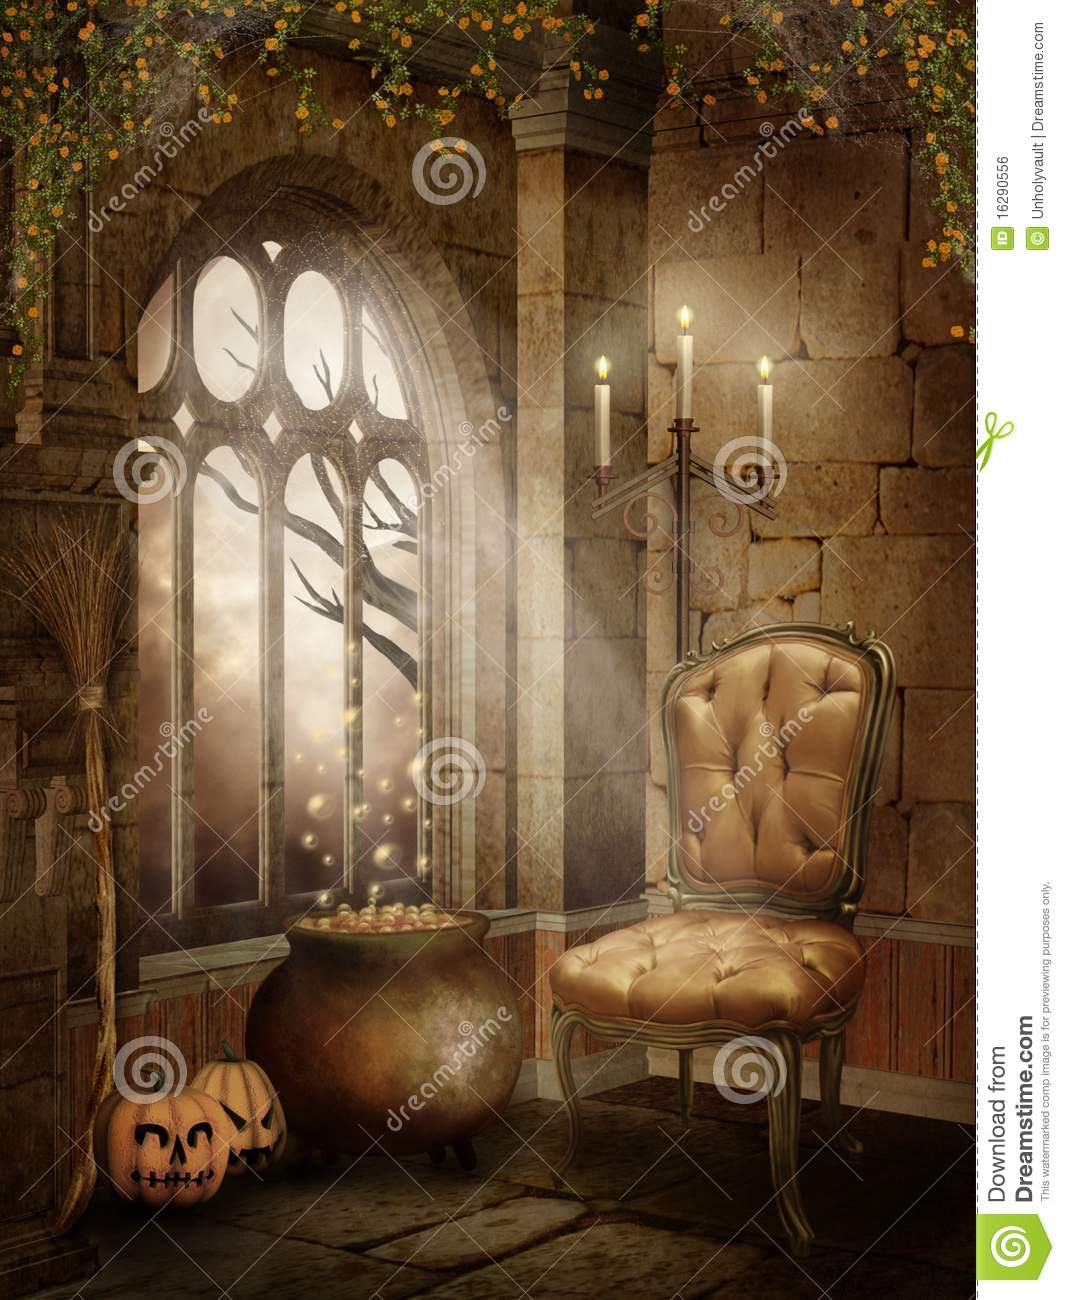 castle room with halloween decorations royalty free stock image image 16290556